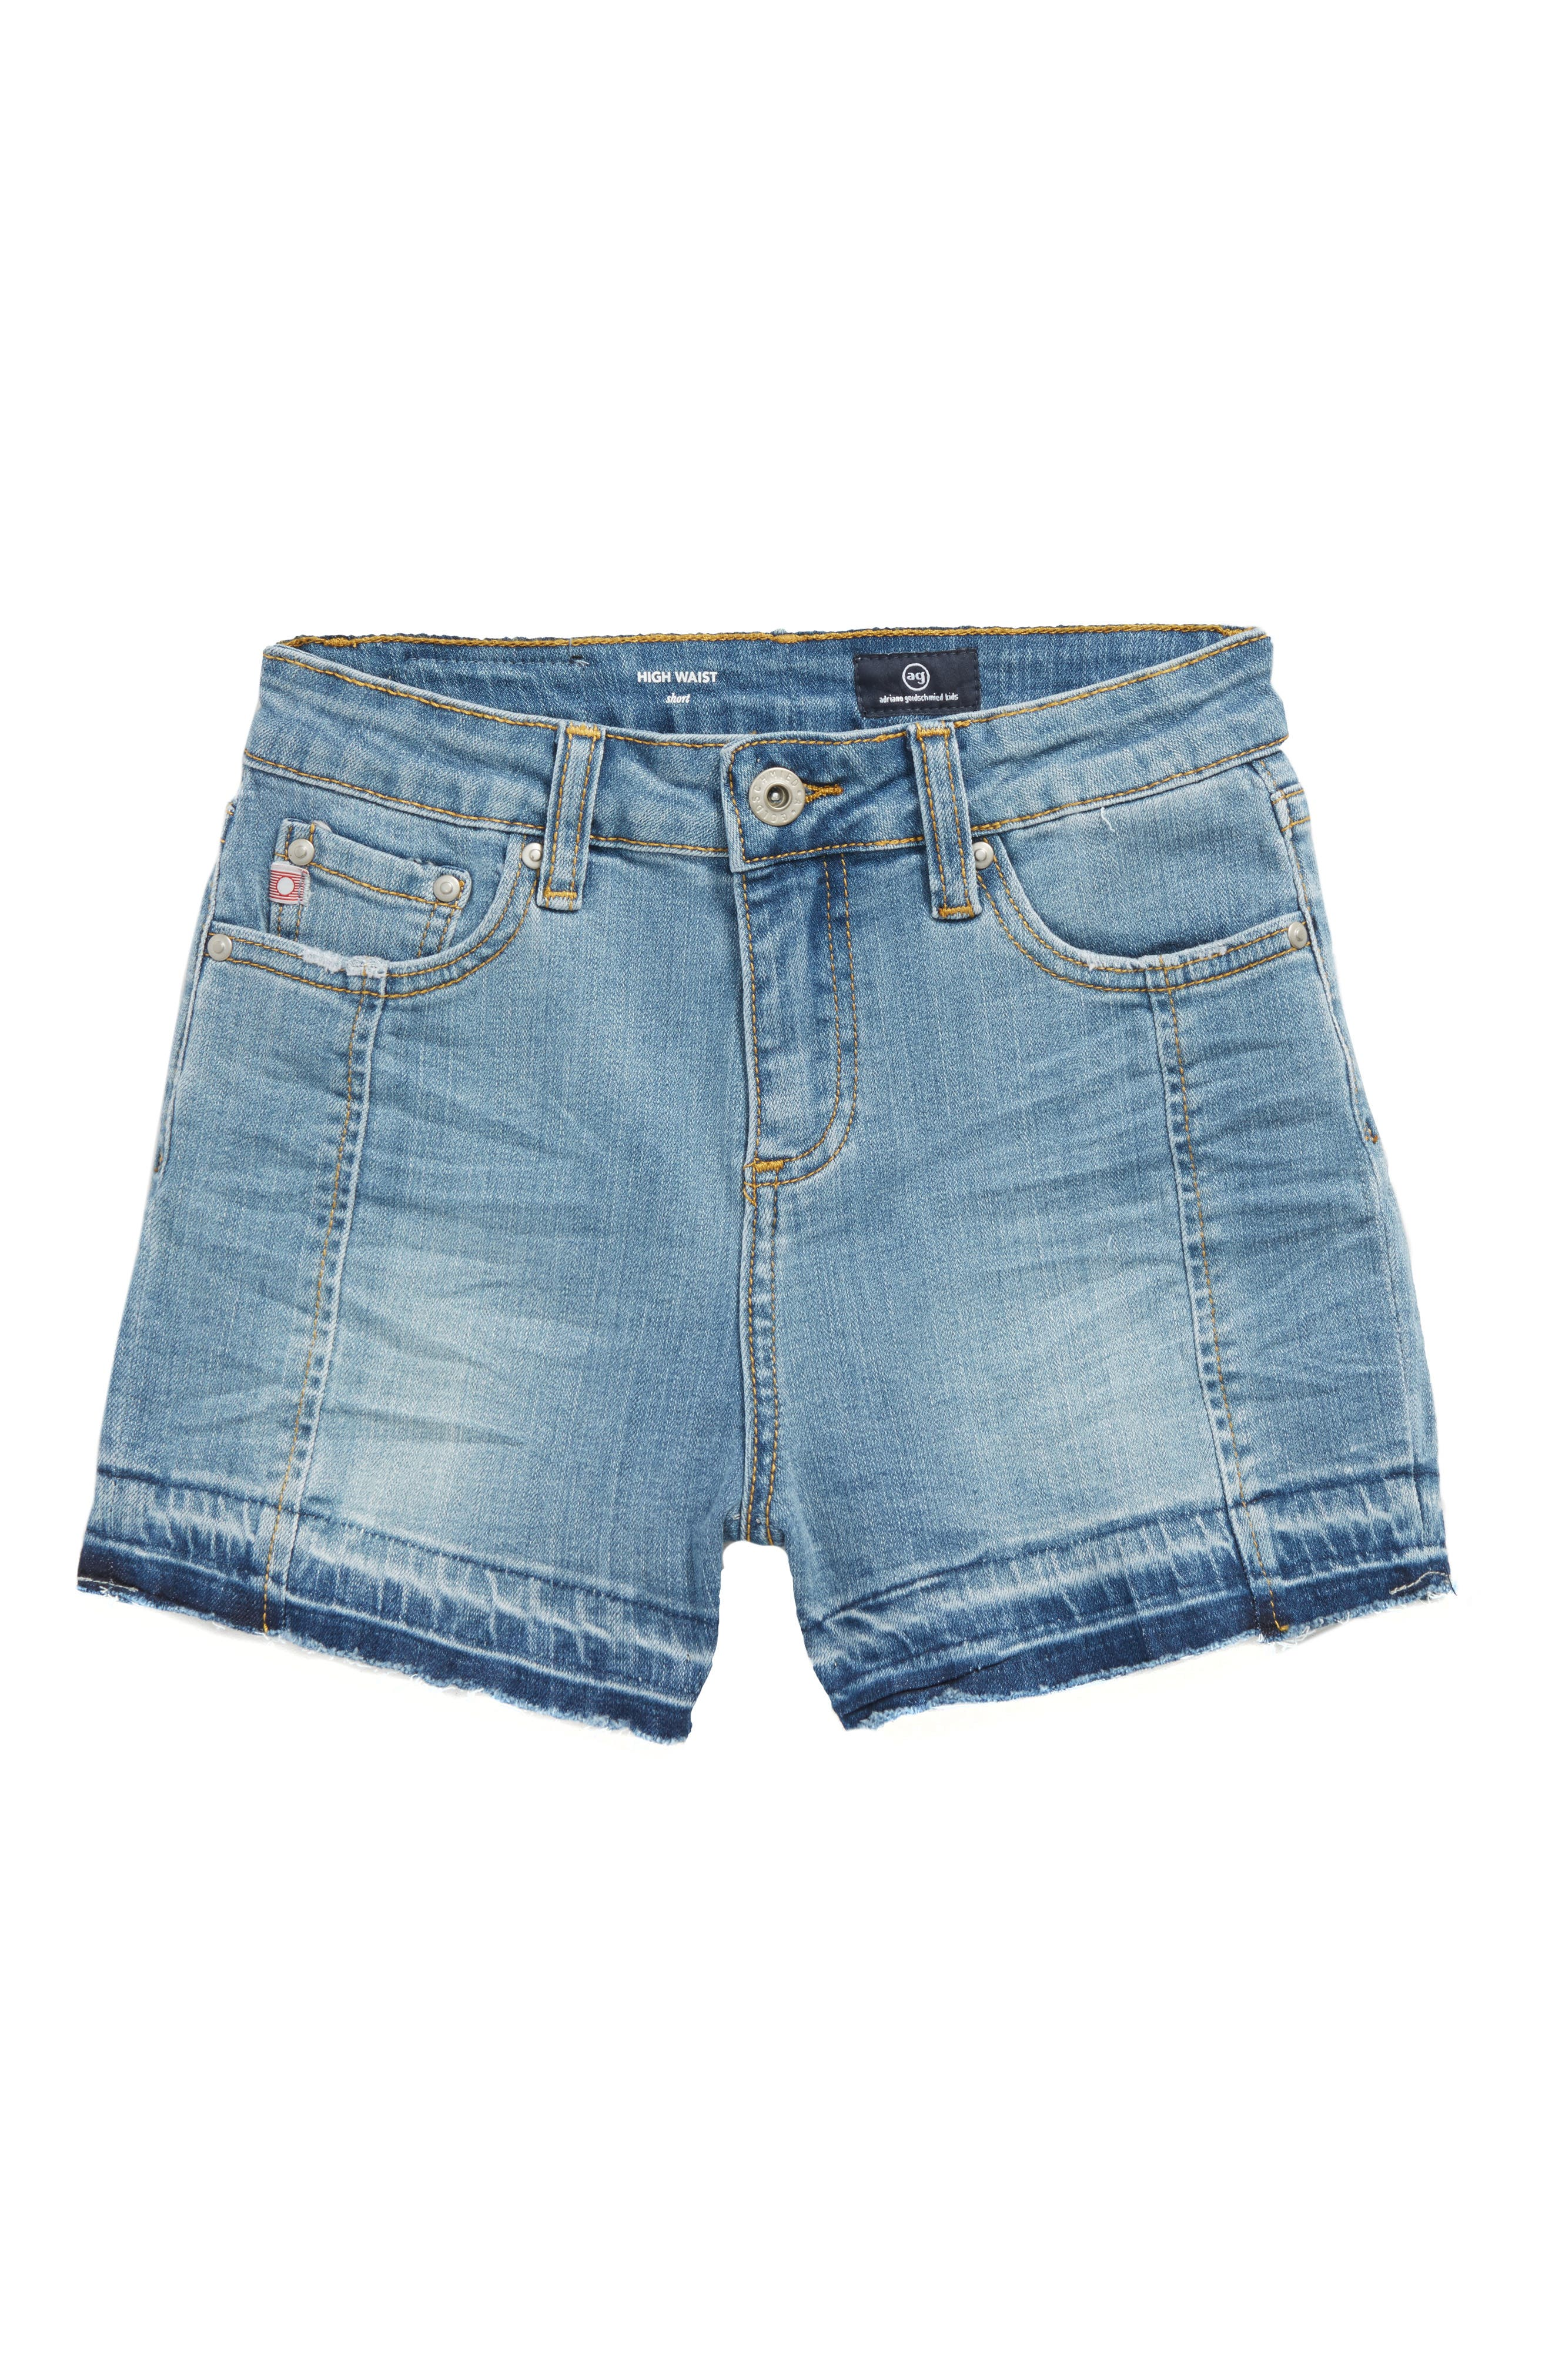 Main Image - ag adriano goldschmied kids Released Hem High Waist Shorts (Big Girls)